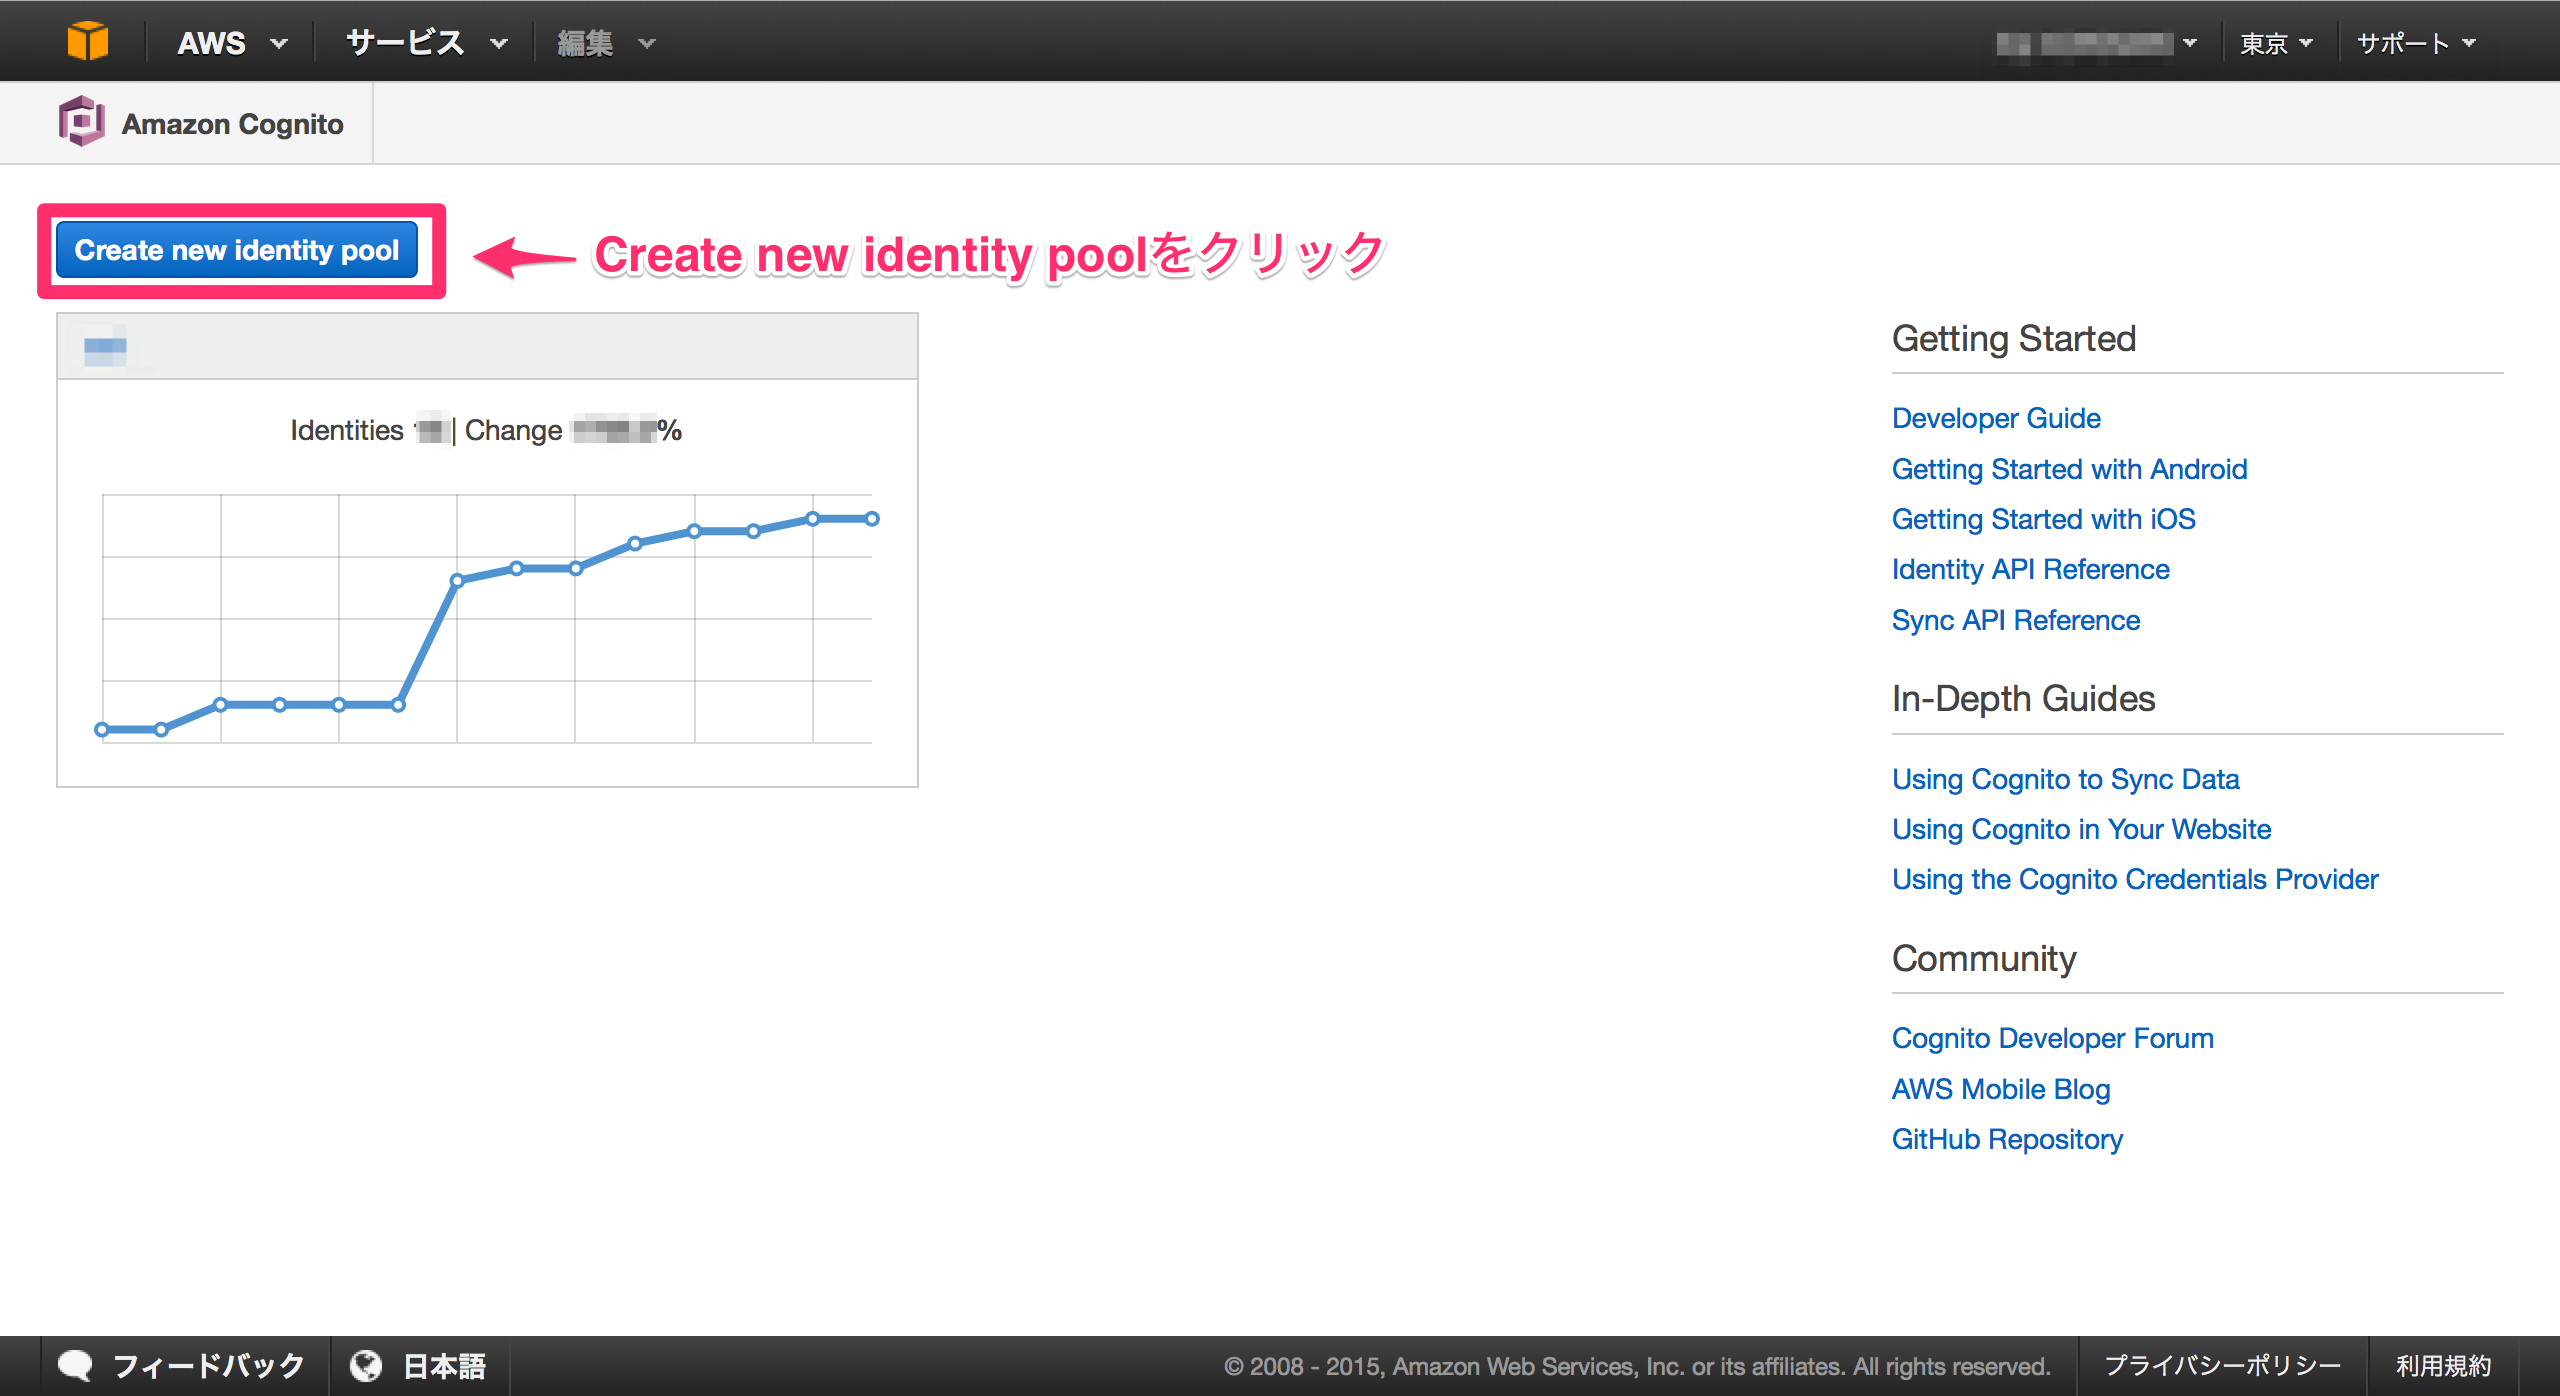 Create new identity poolをクリック